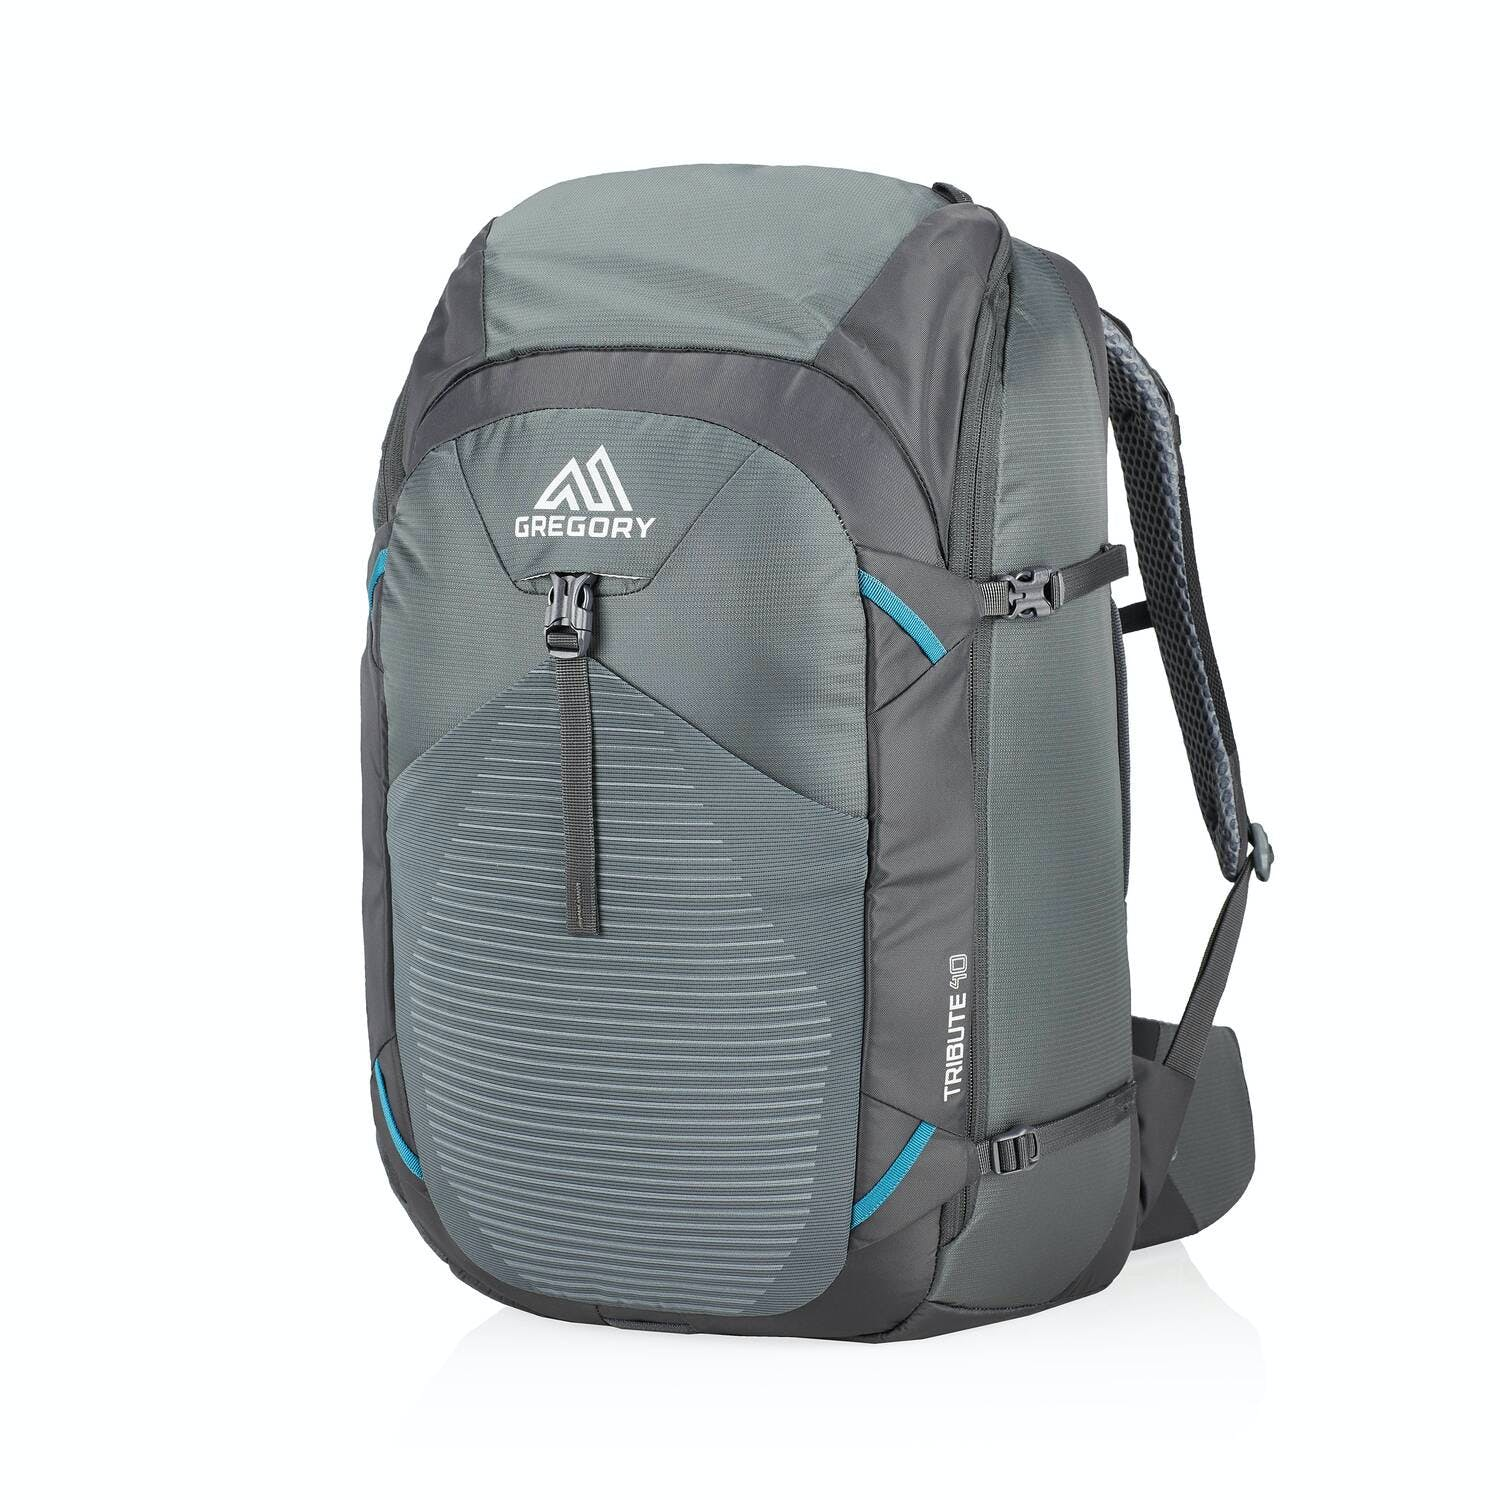 GREGORY - TRIBUTE 40 WOMENS - OS - Mystic Grey